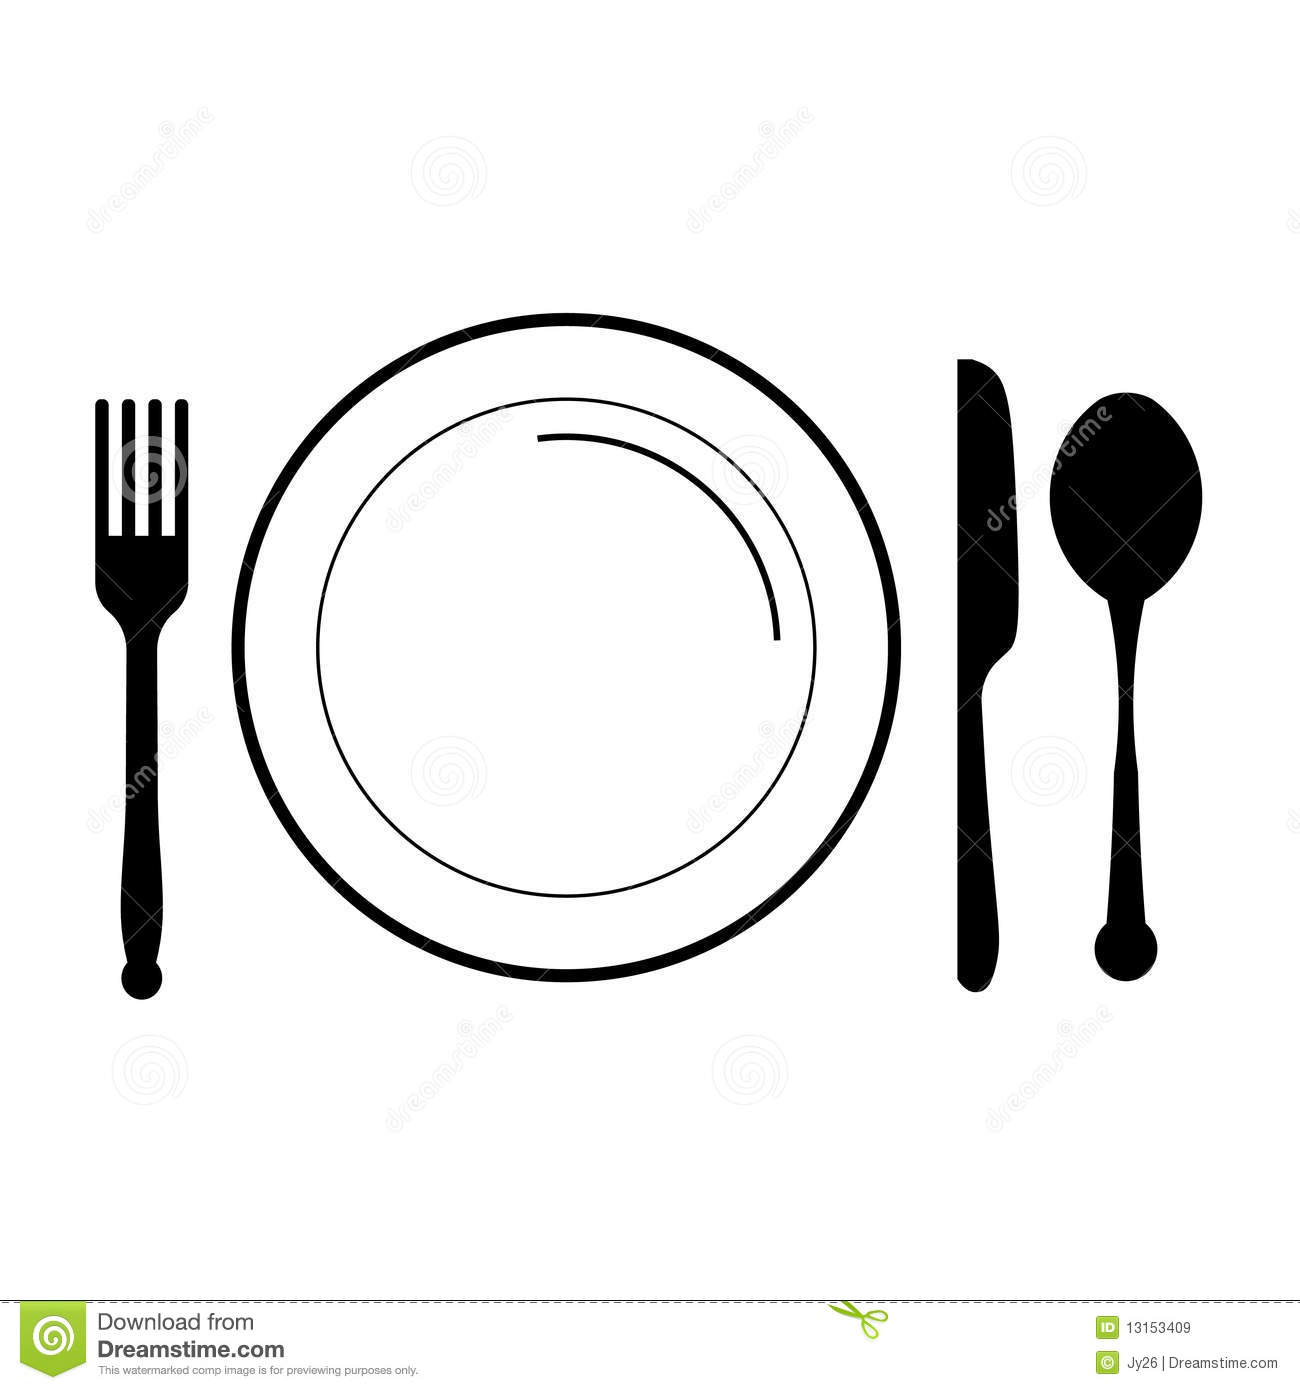 Plate with fork, knife , spoon